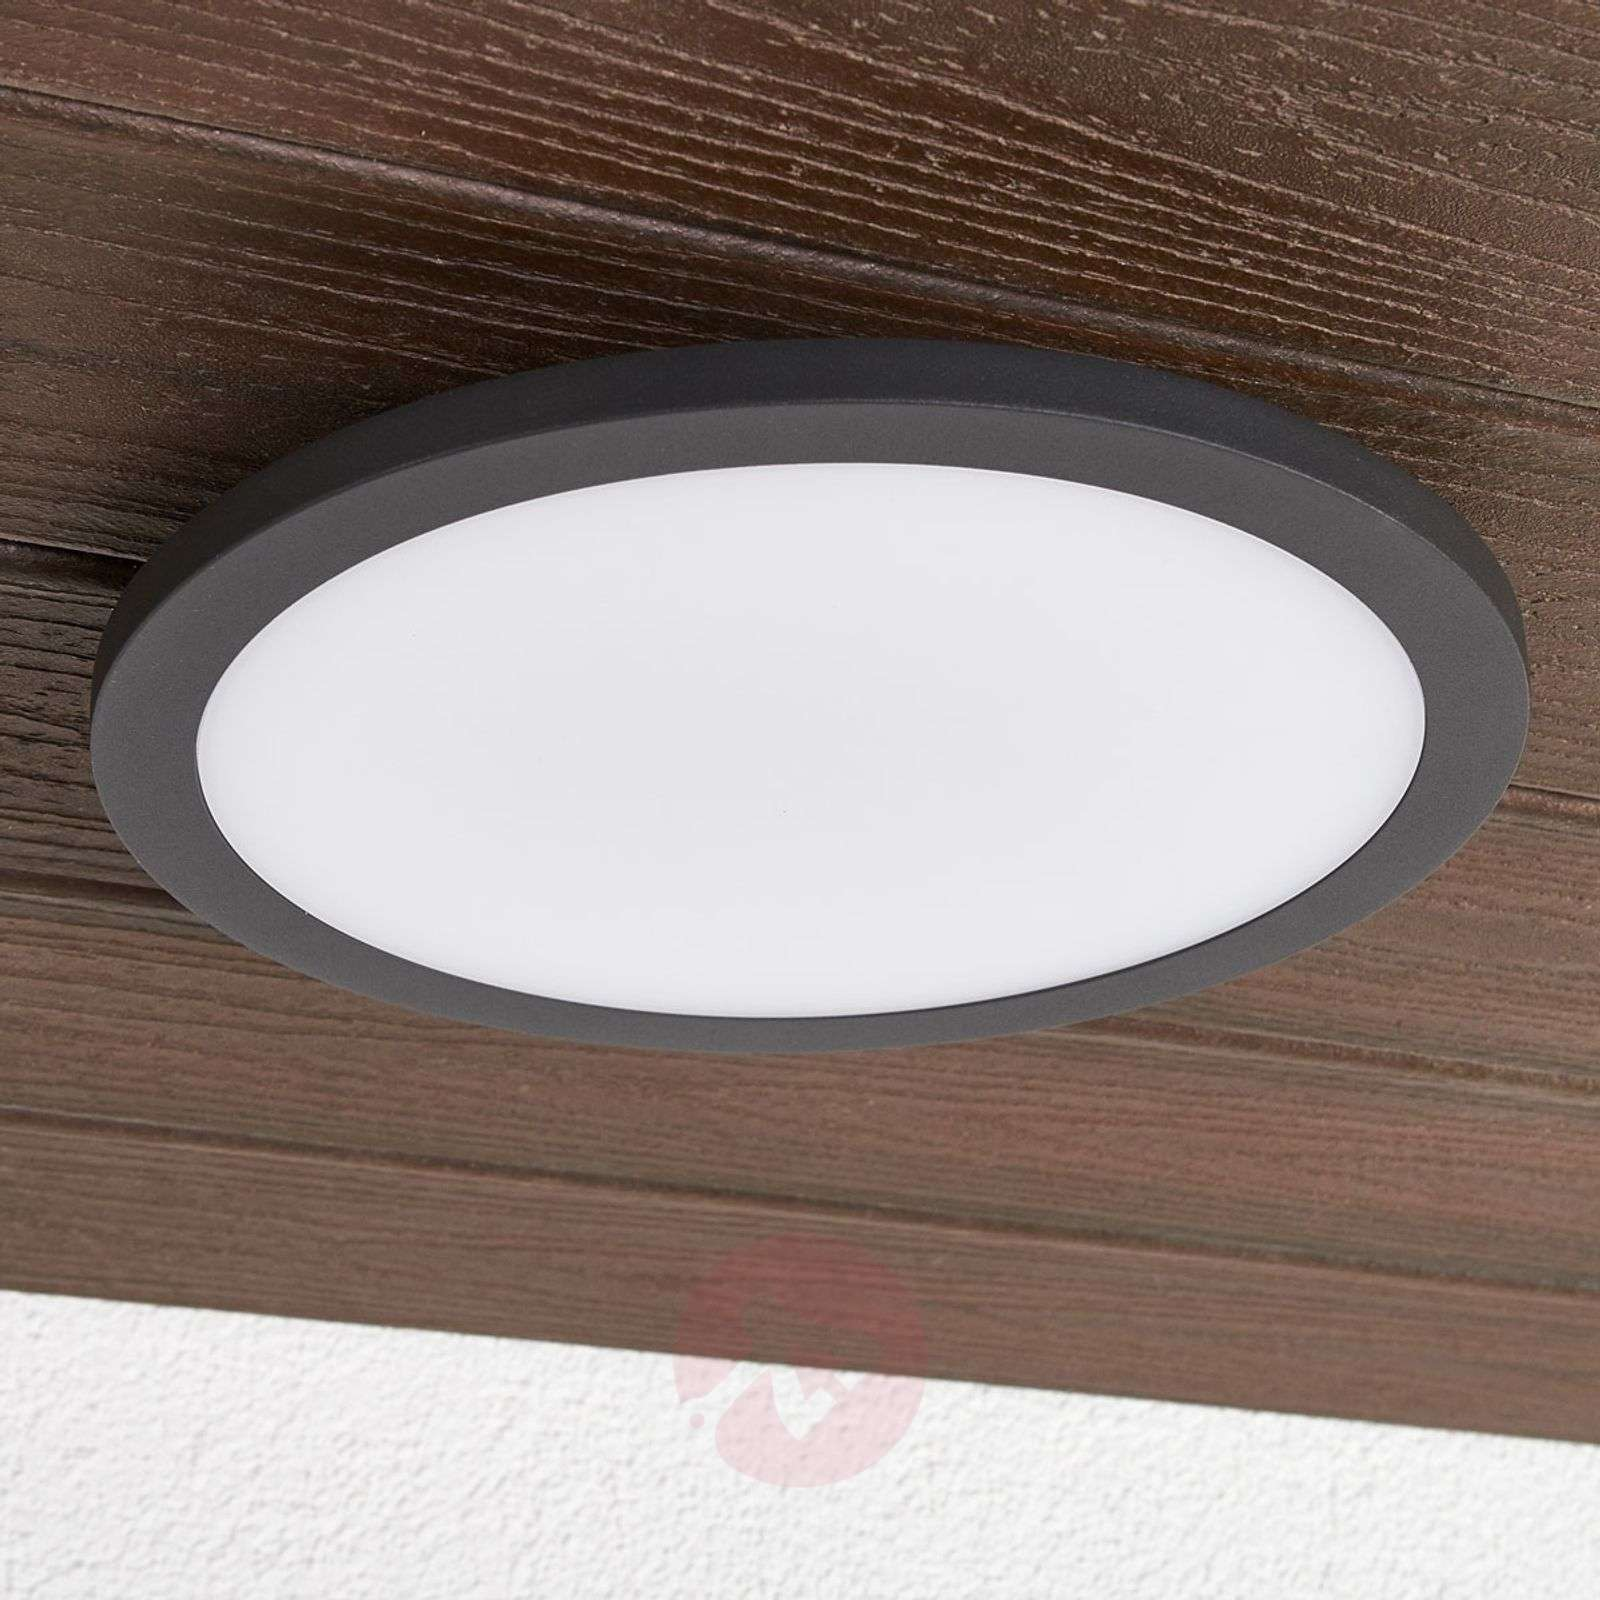 LED outdoor ceiling light Malena with sensor-9619112-03